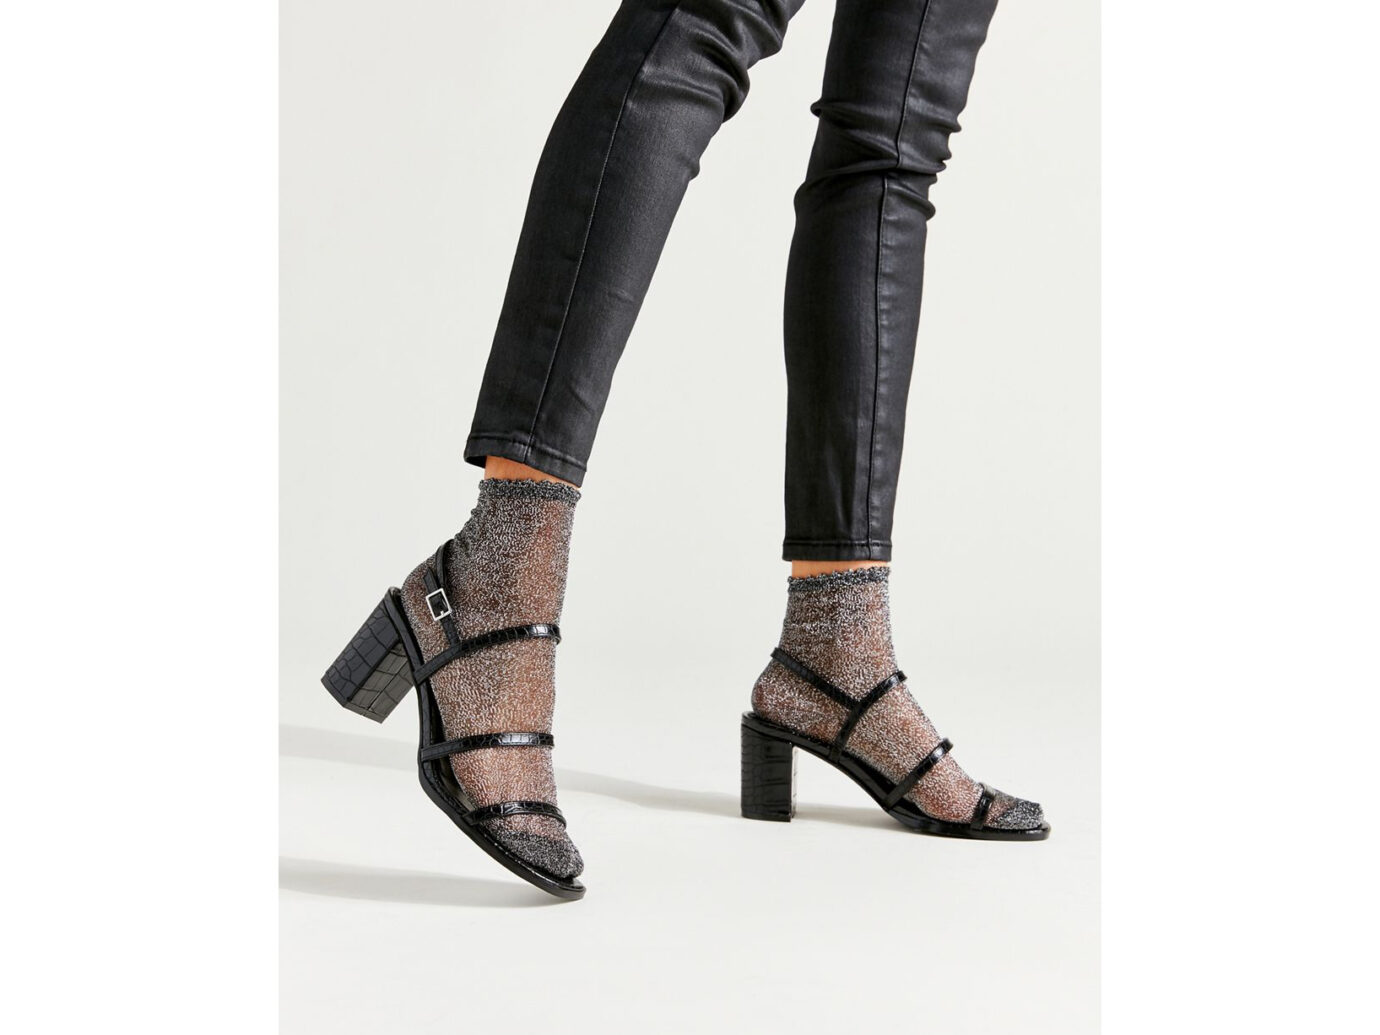 Urban Outfitters Mellie Strappy Heel sale